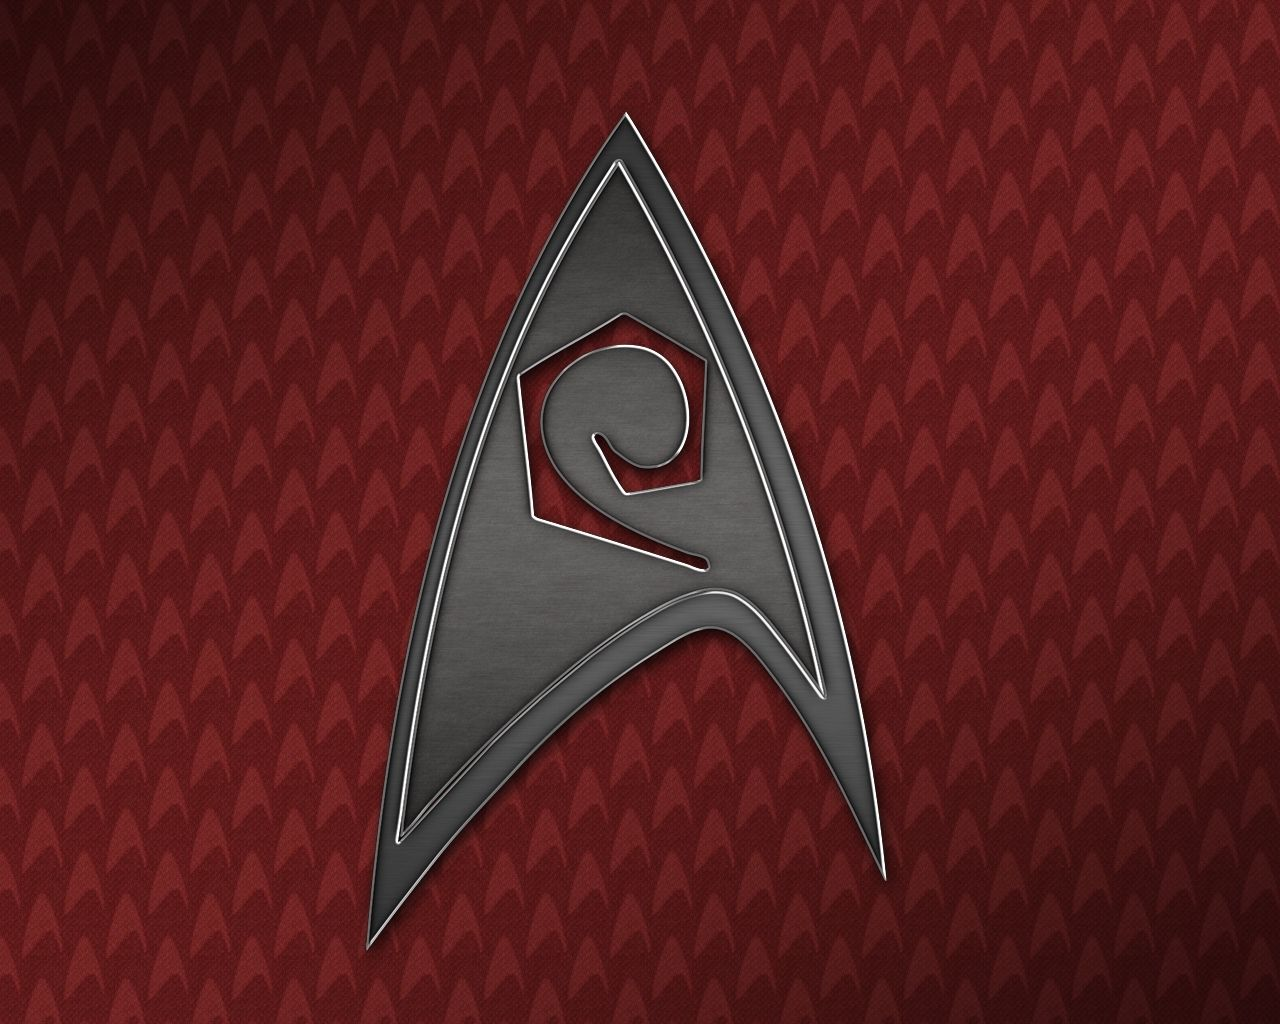 Red Star Trek Logo Logodix